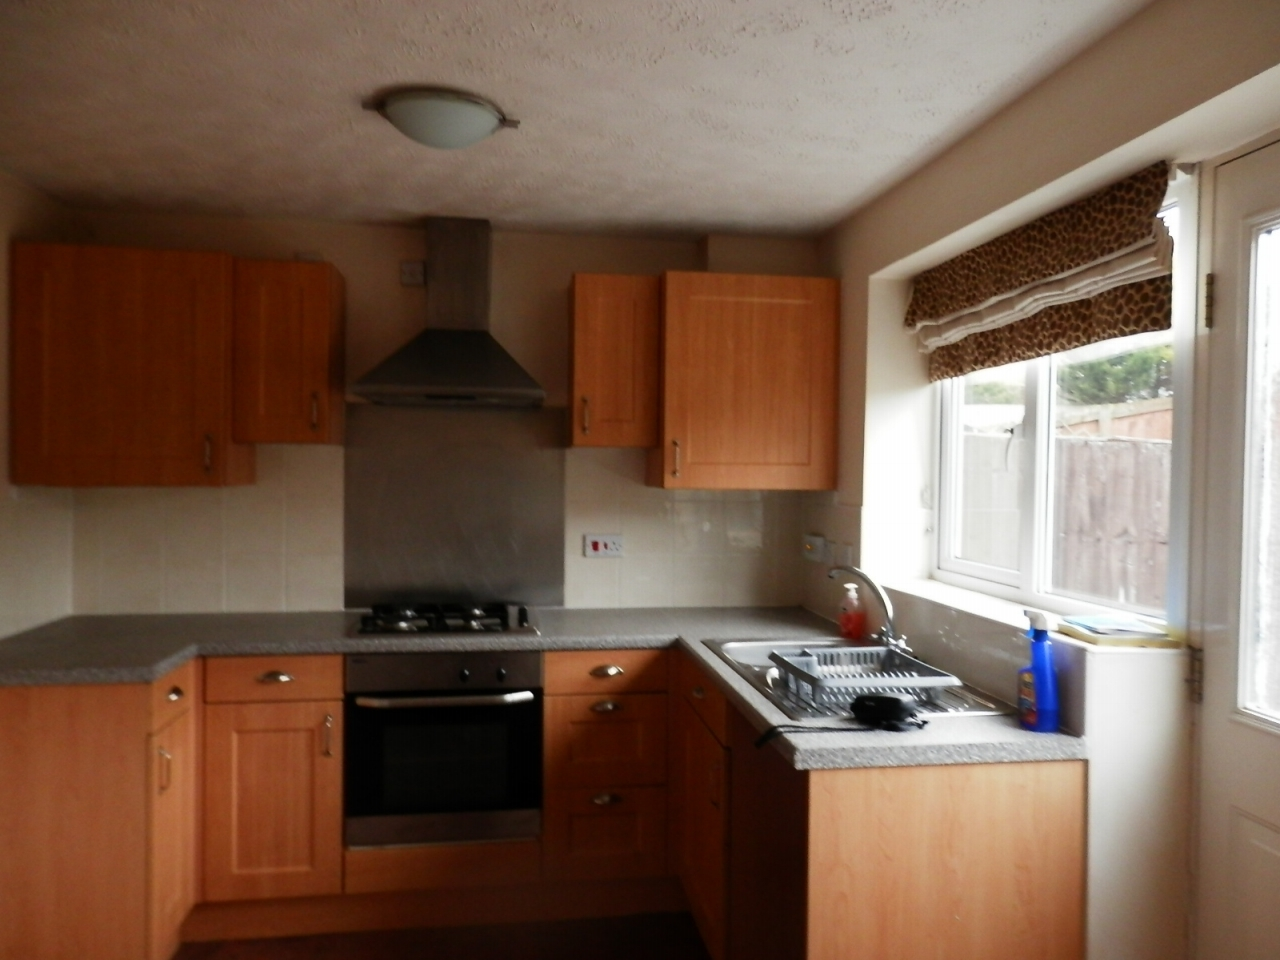 2 bedroom town house in Chorley - Photograph 2.